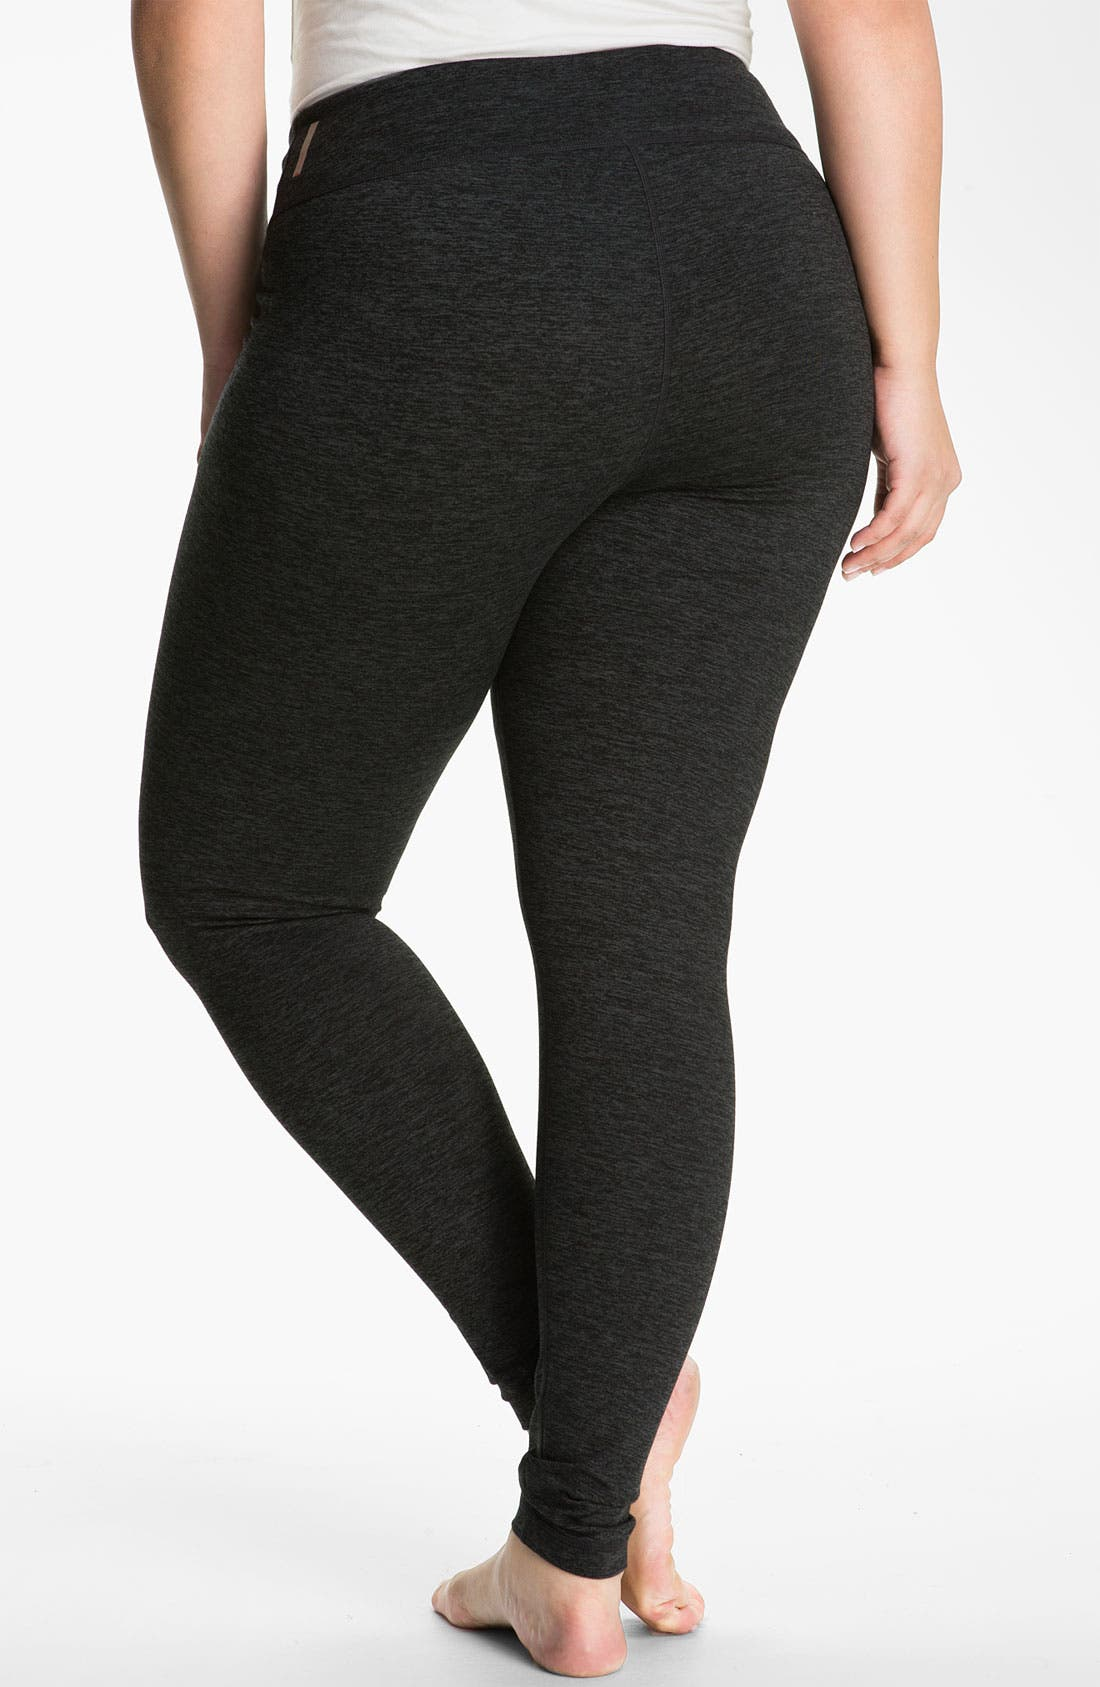 Alternate Image 2  - Zella 'Live In' Cross Dye Leggings (Plus Size)